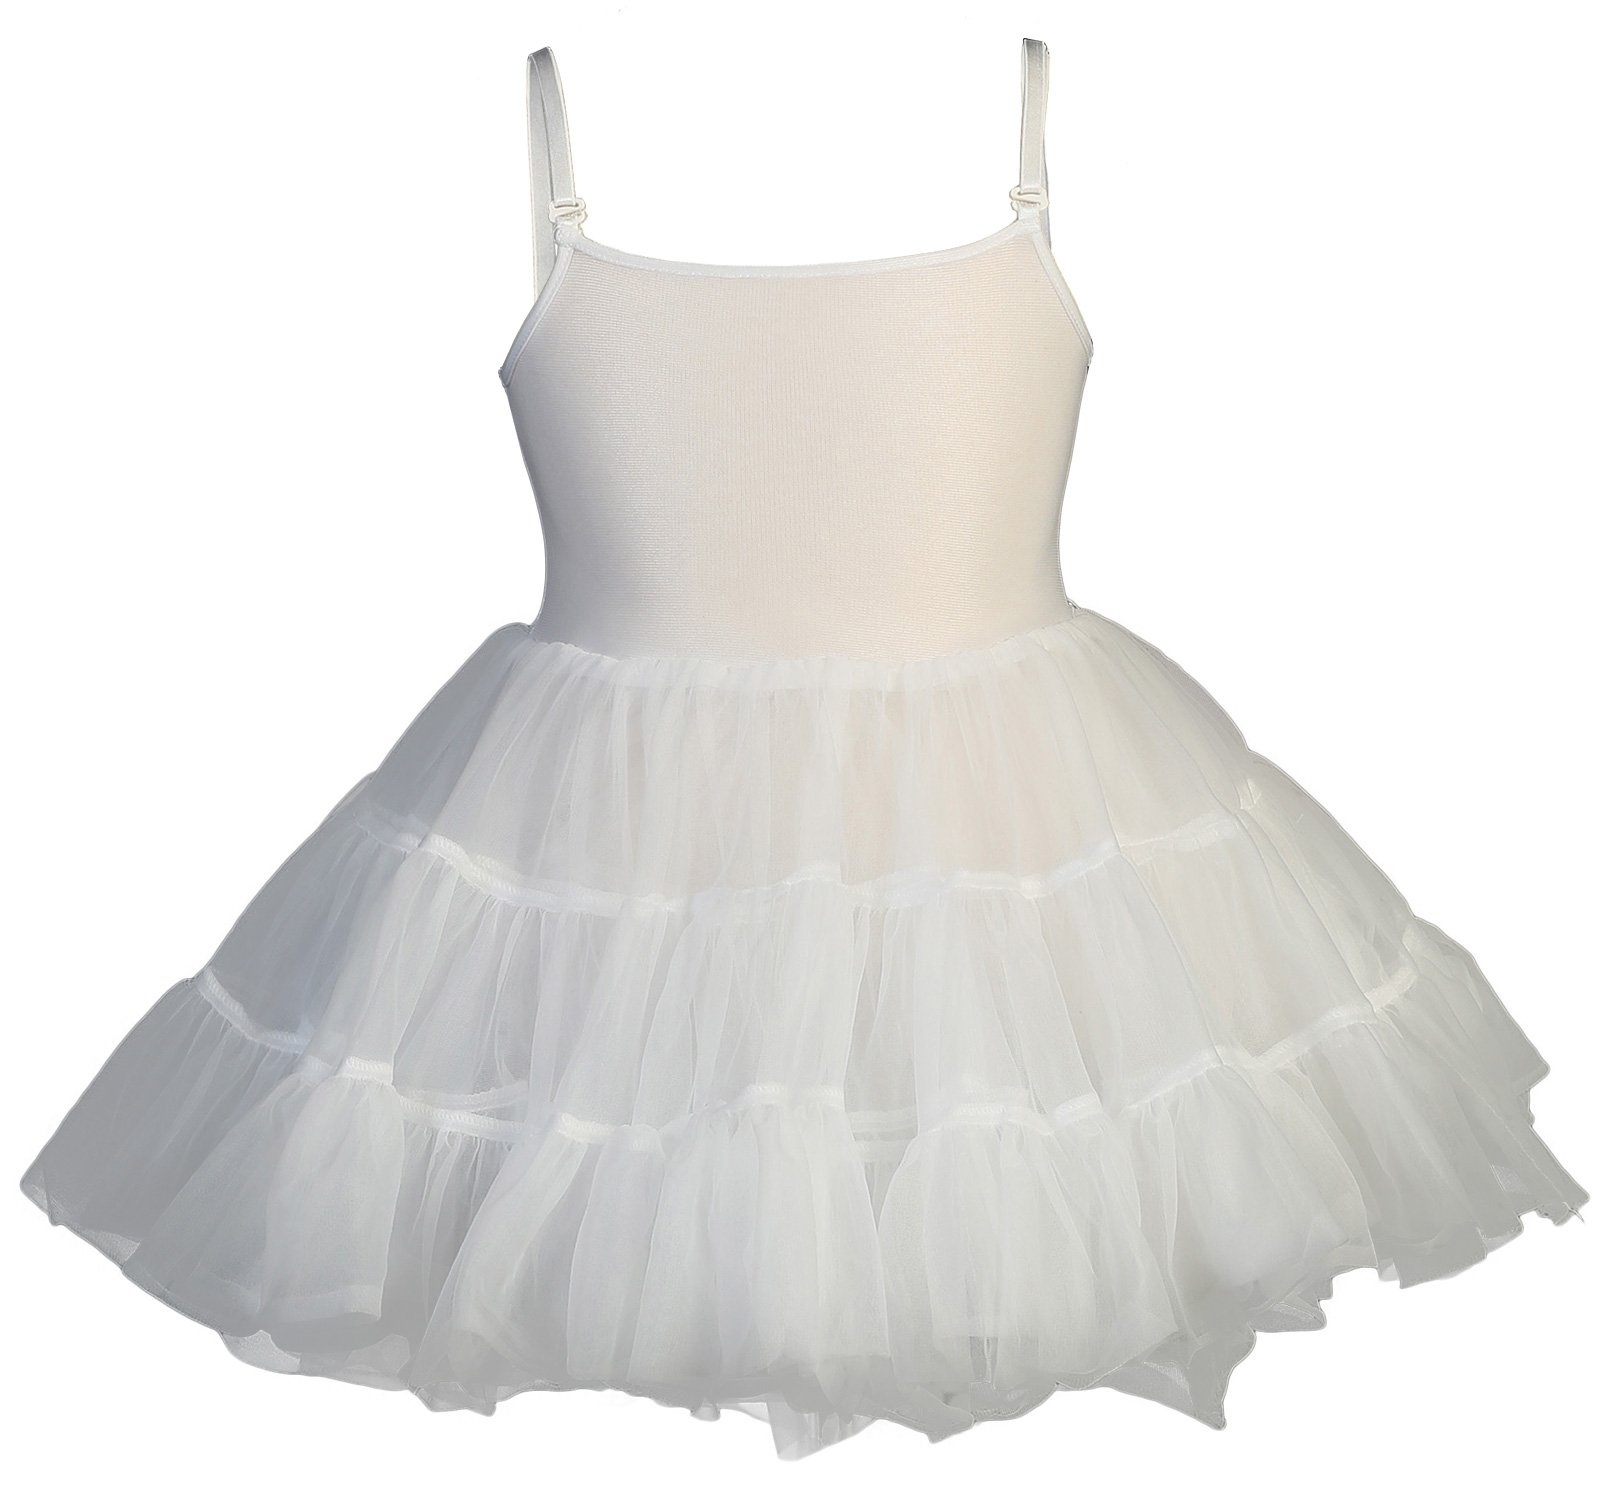 Girls Petticoat Full Slip (Large (7 - 8))